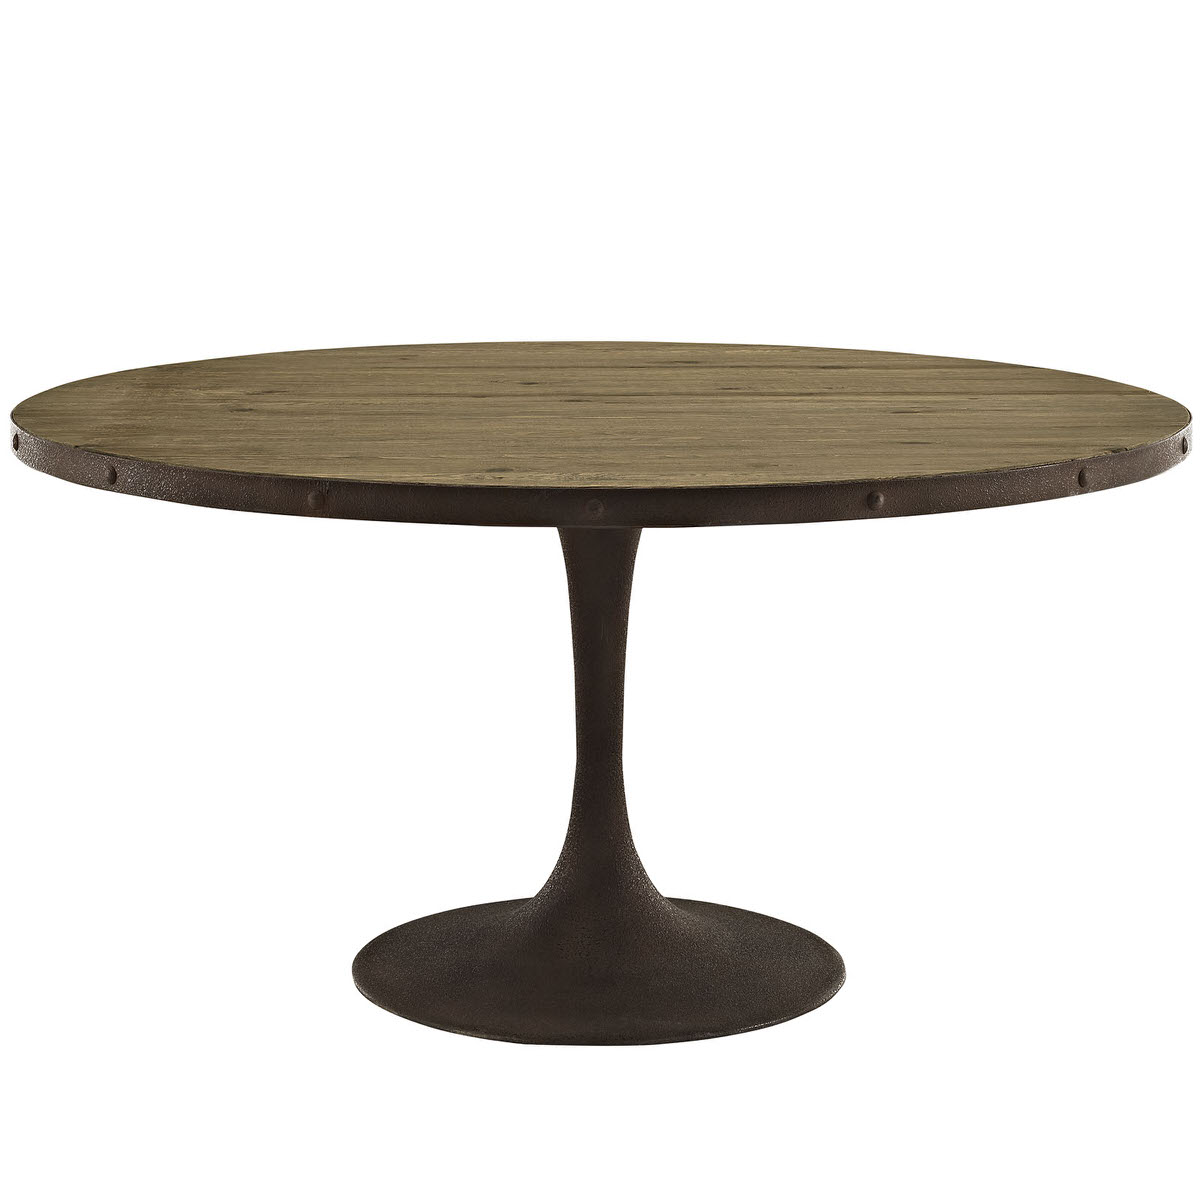 Drive Inch Round Wood Top Dining Table Brown By Modern Living - Modern 60 inch round dining table